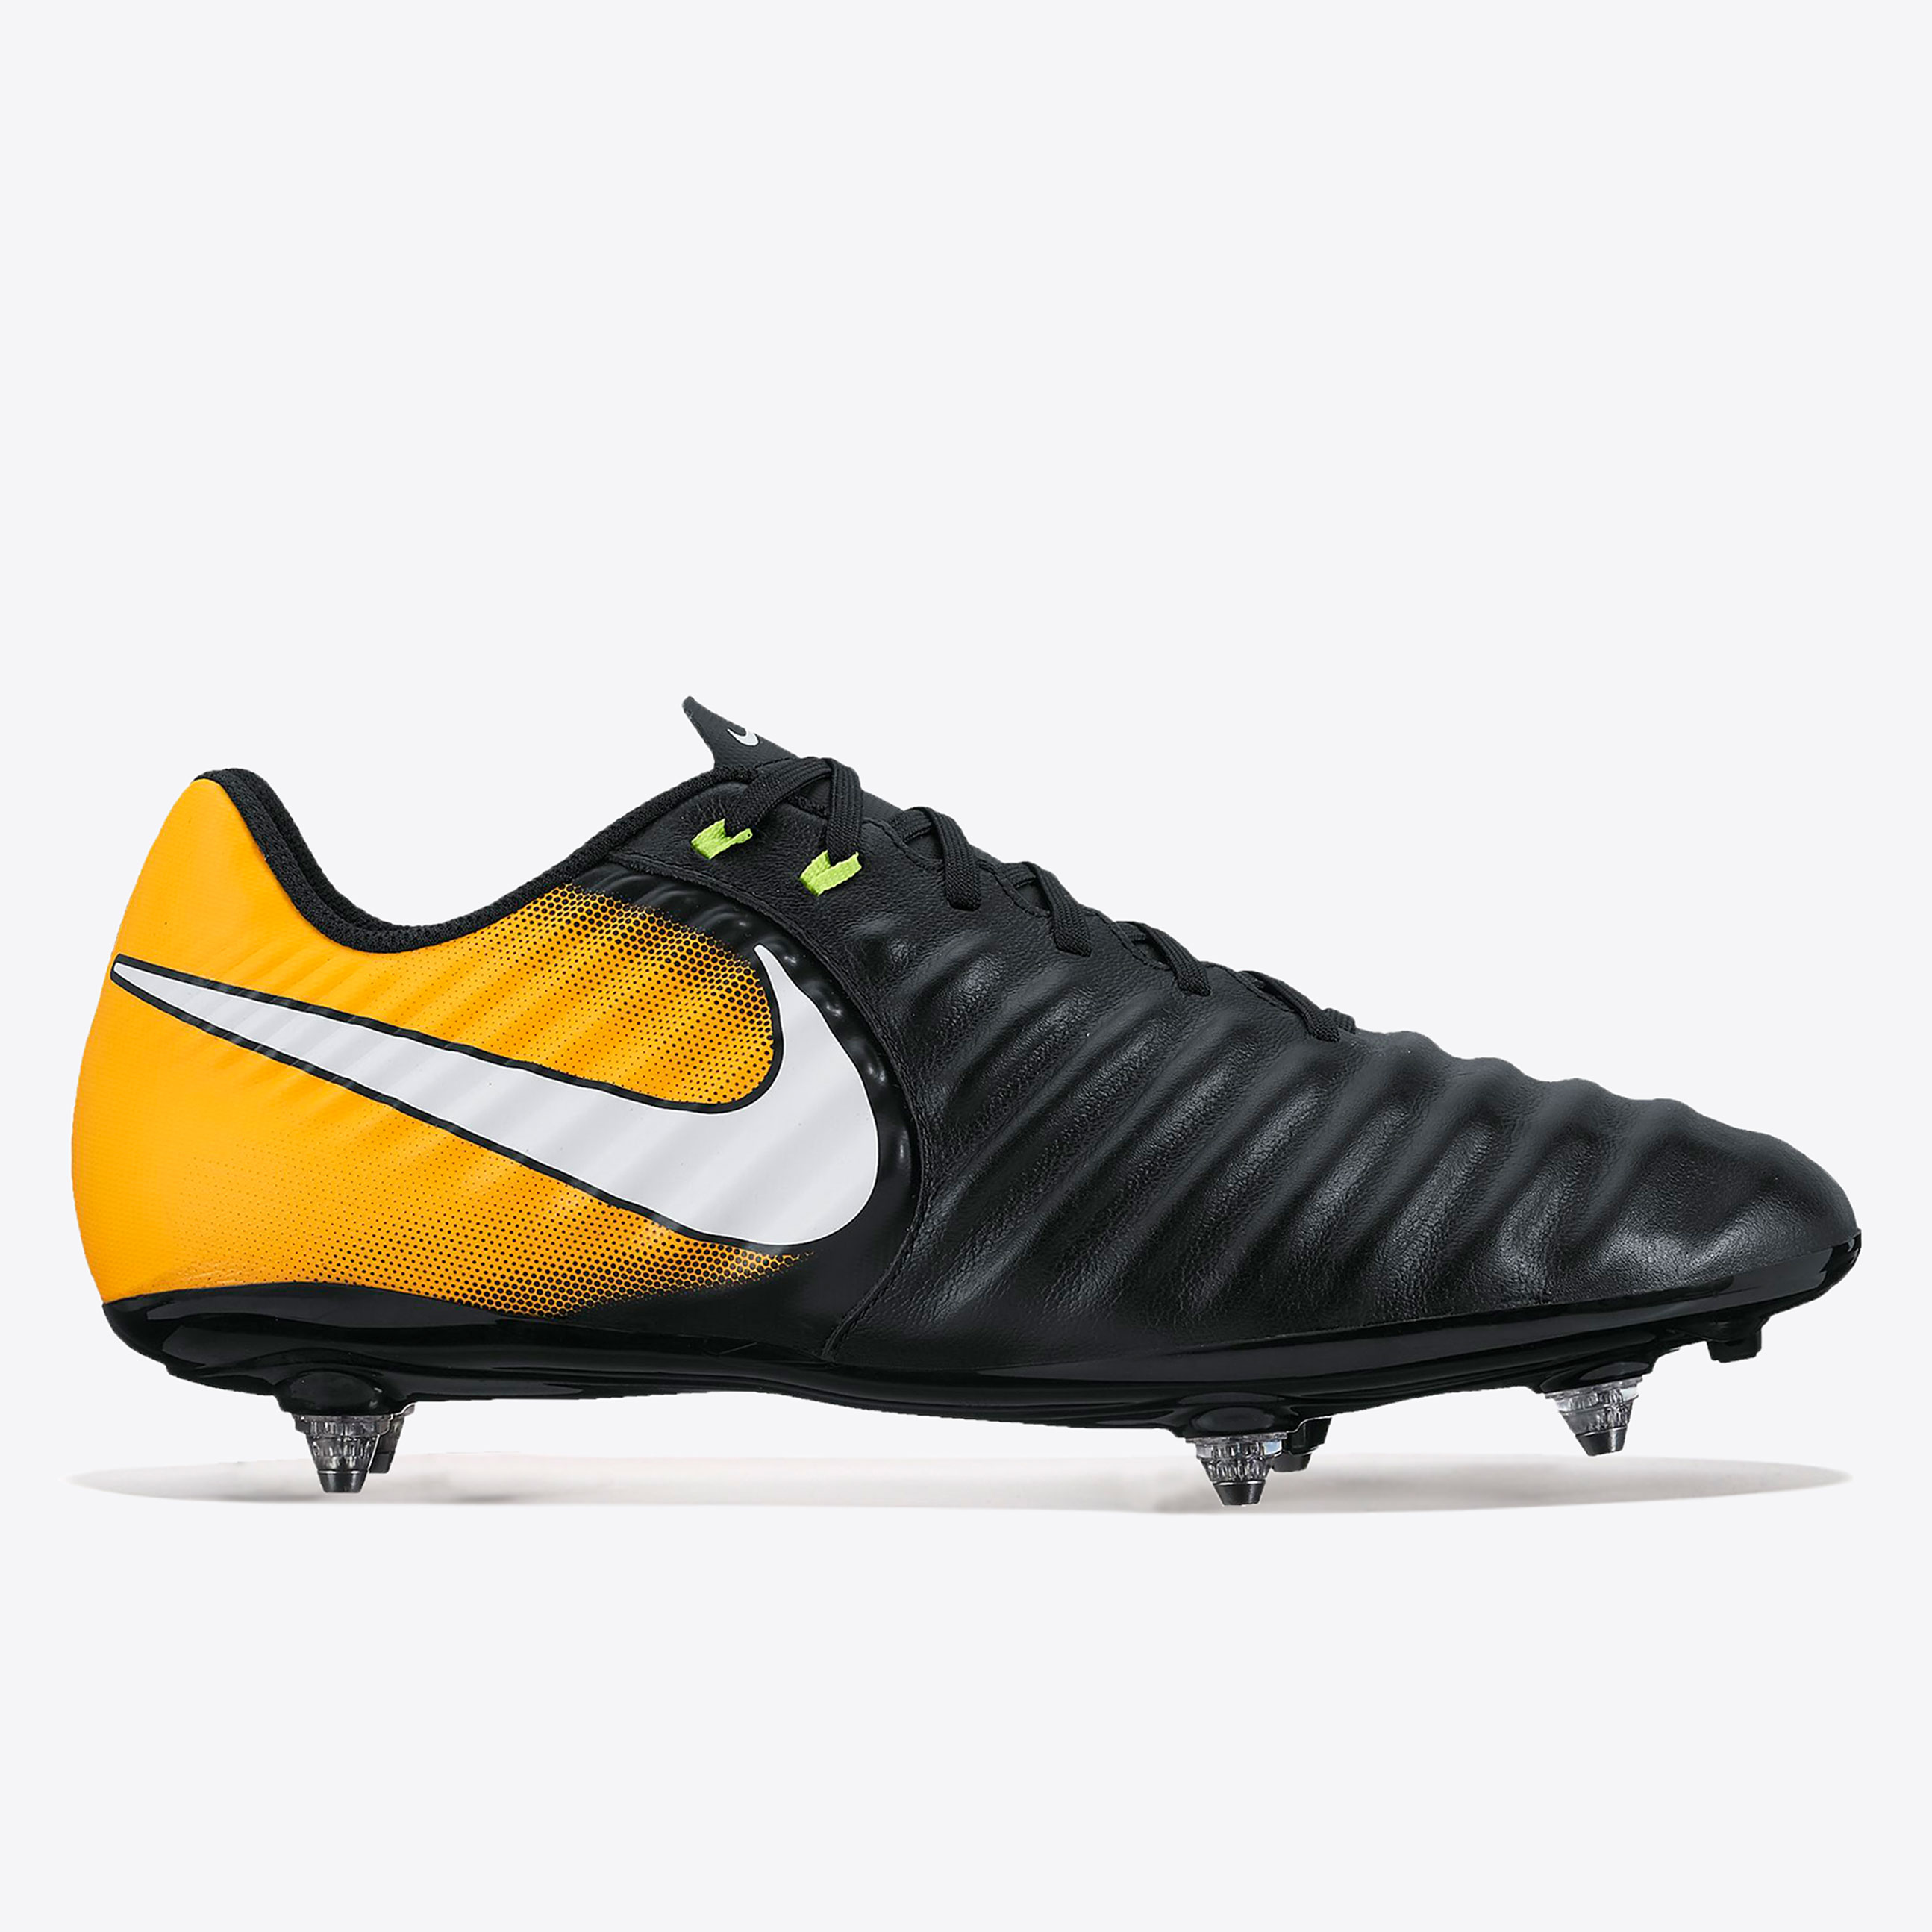 Nike Tiempo Ligera IV Soft Ground Football Boots - Black/White/Laser O